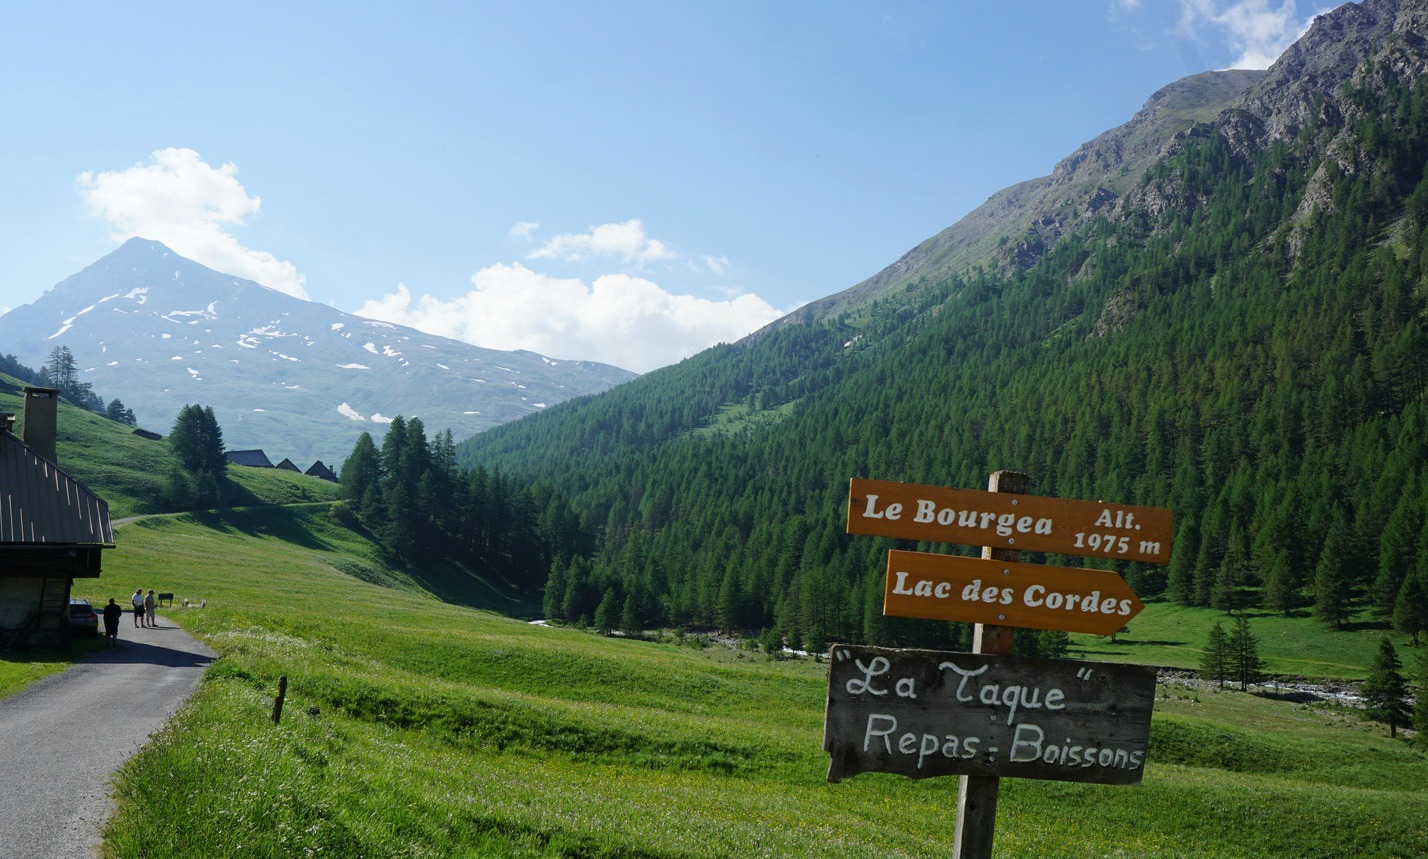 Les Chalps in the Cerveyrette Valley